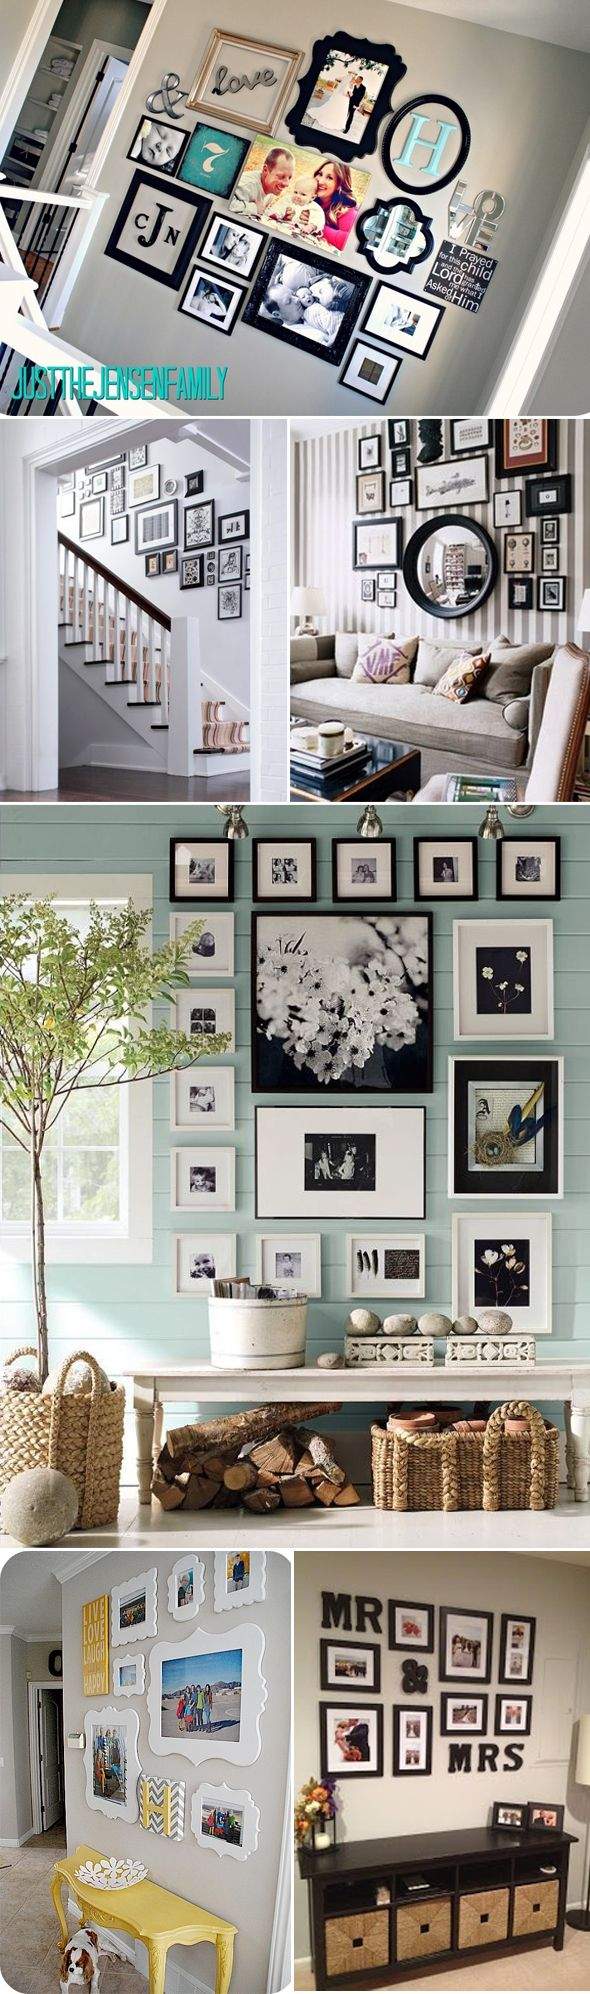 photo walls, love the top pic!